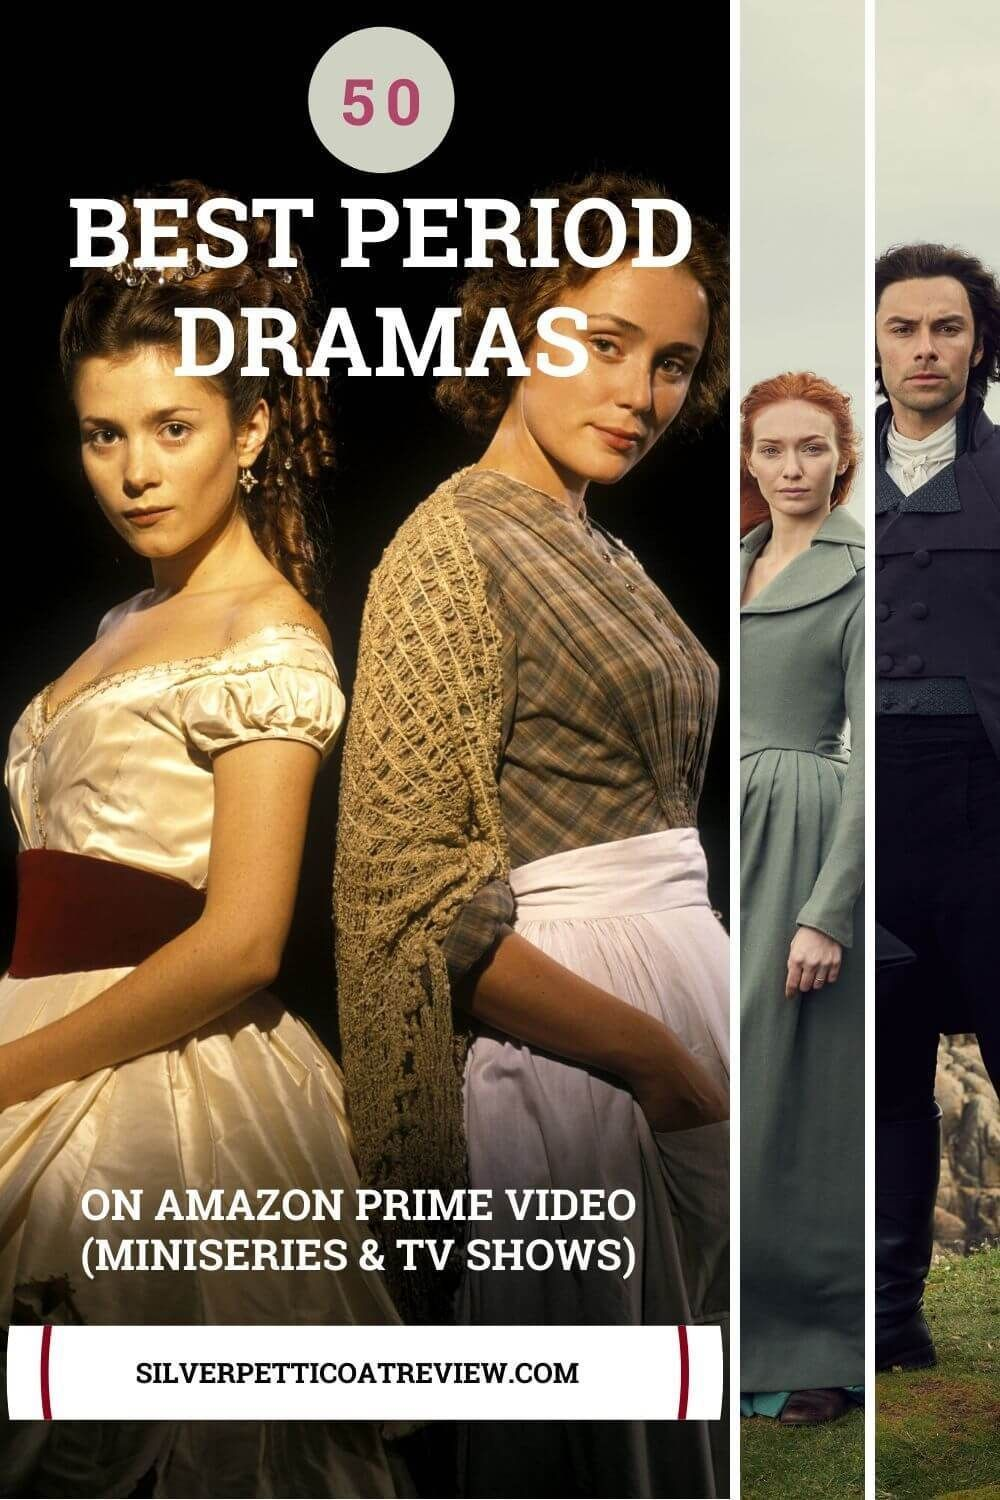 The 50 Best Period Dramas on Amazon Prime Miniseries and